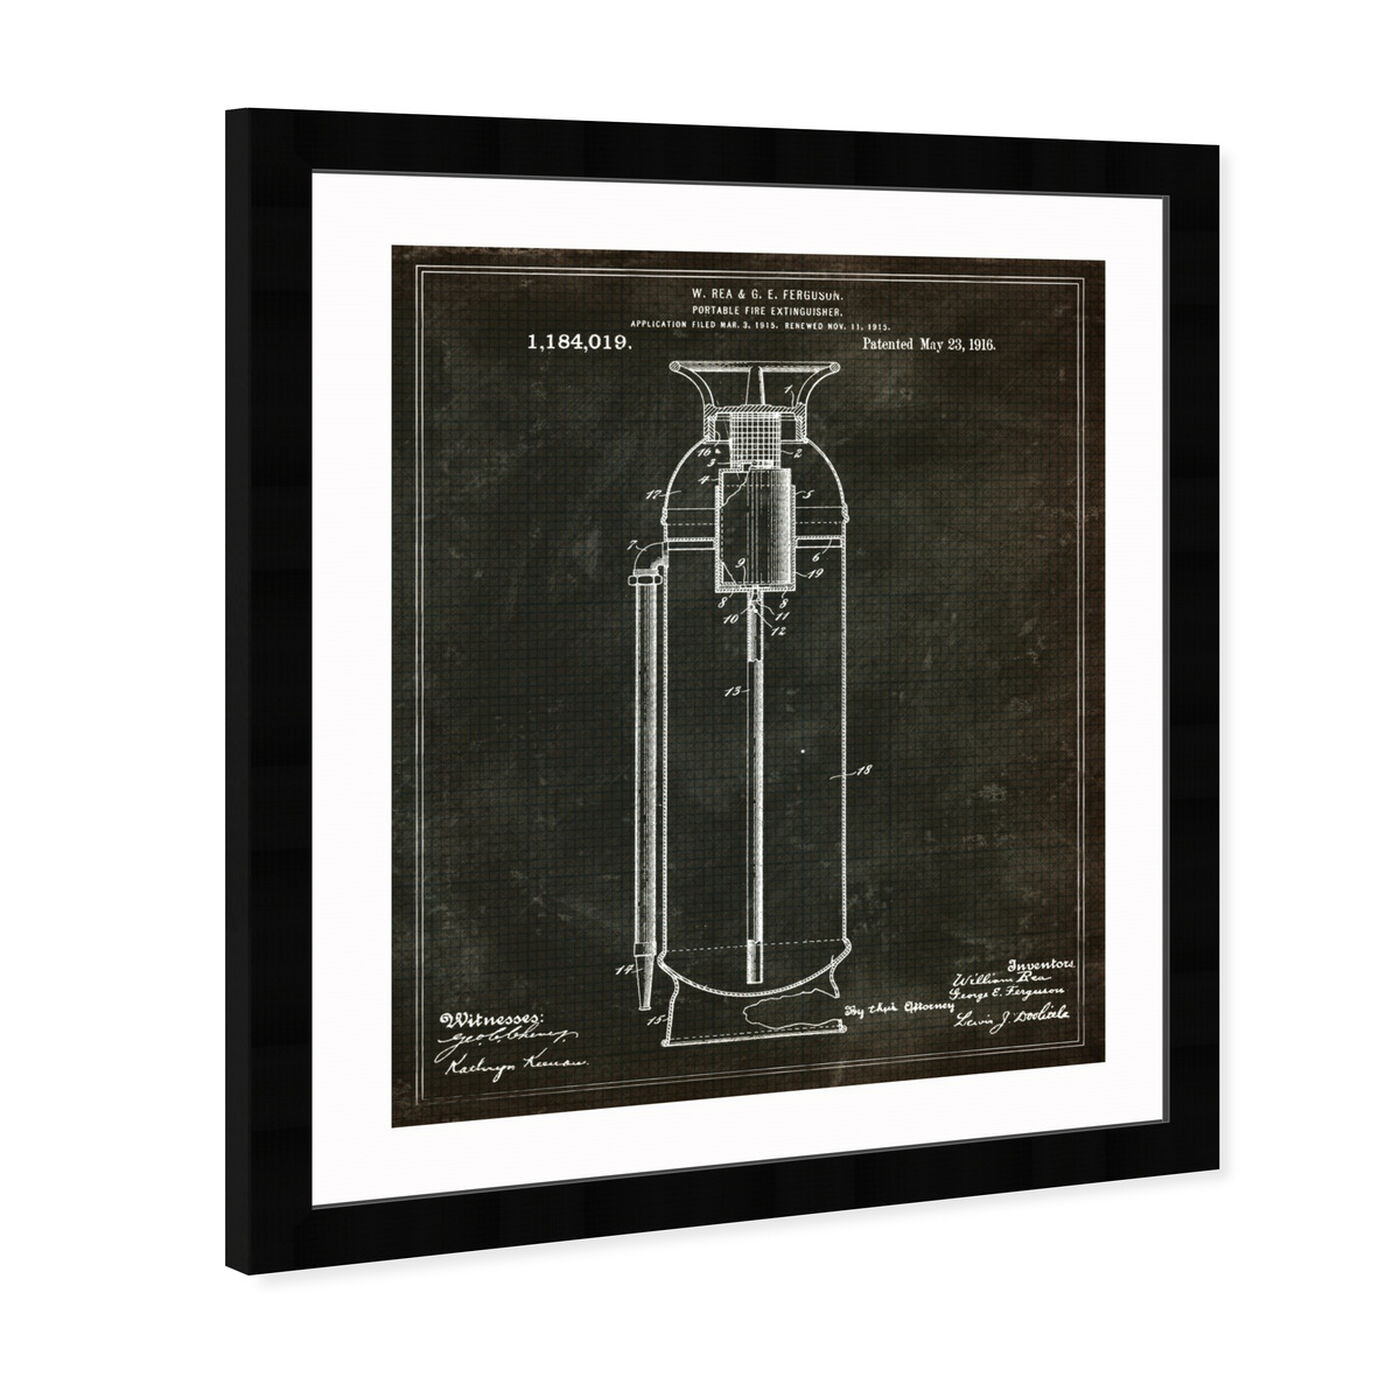 Angled view of Portable Fire Extinguisher 1916 featuring symbols and objects and shapes art.